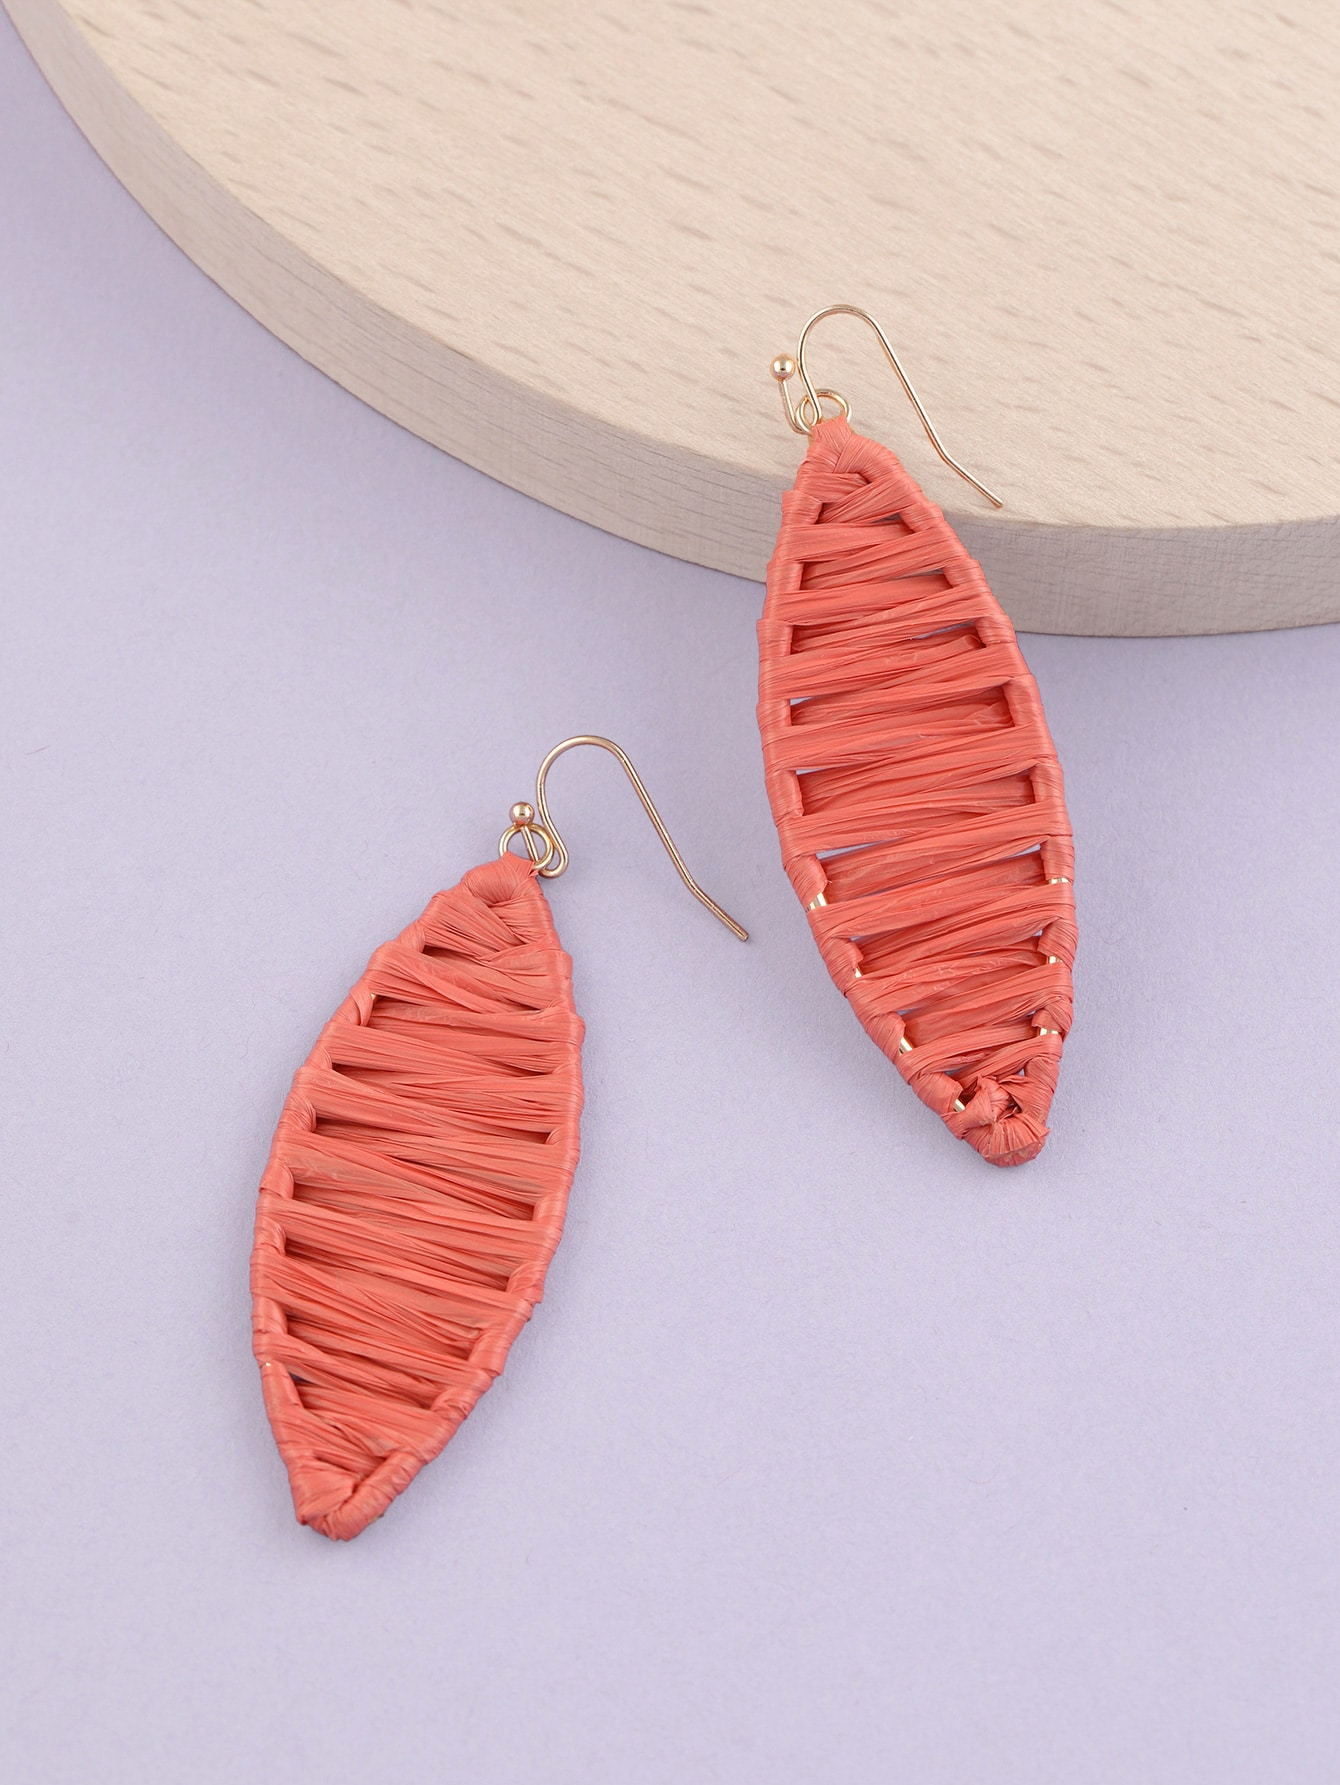 1pair long oval wrapped earrings